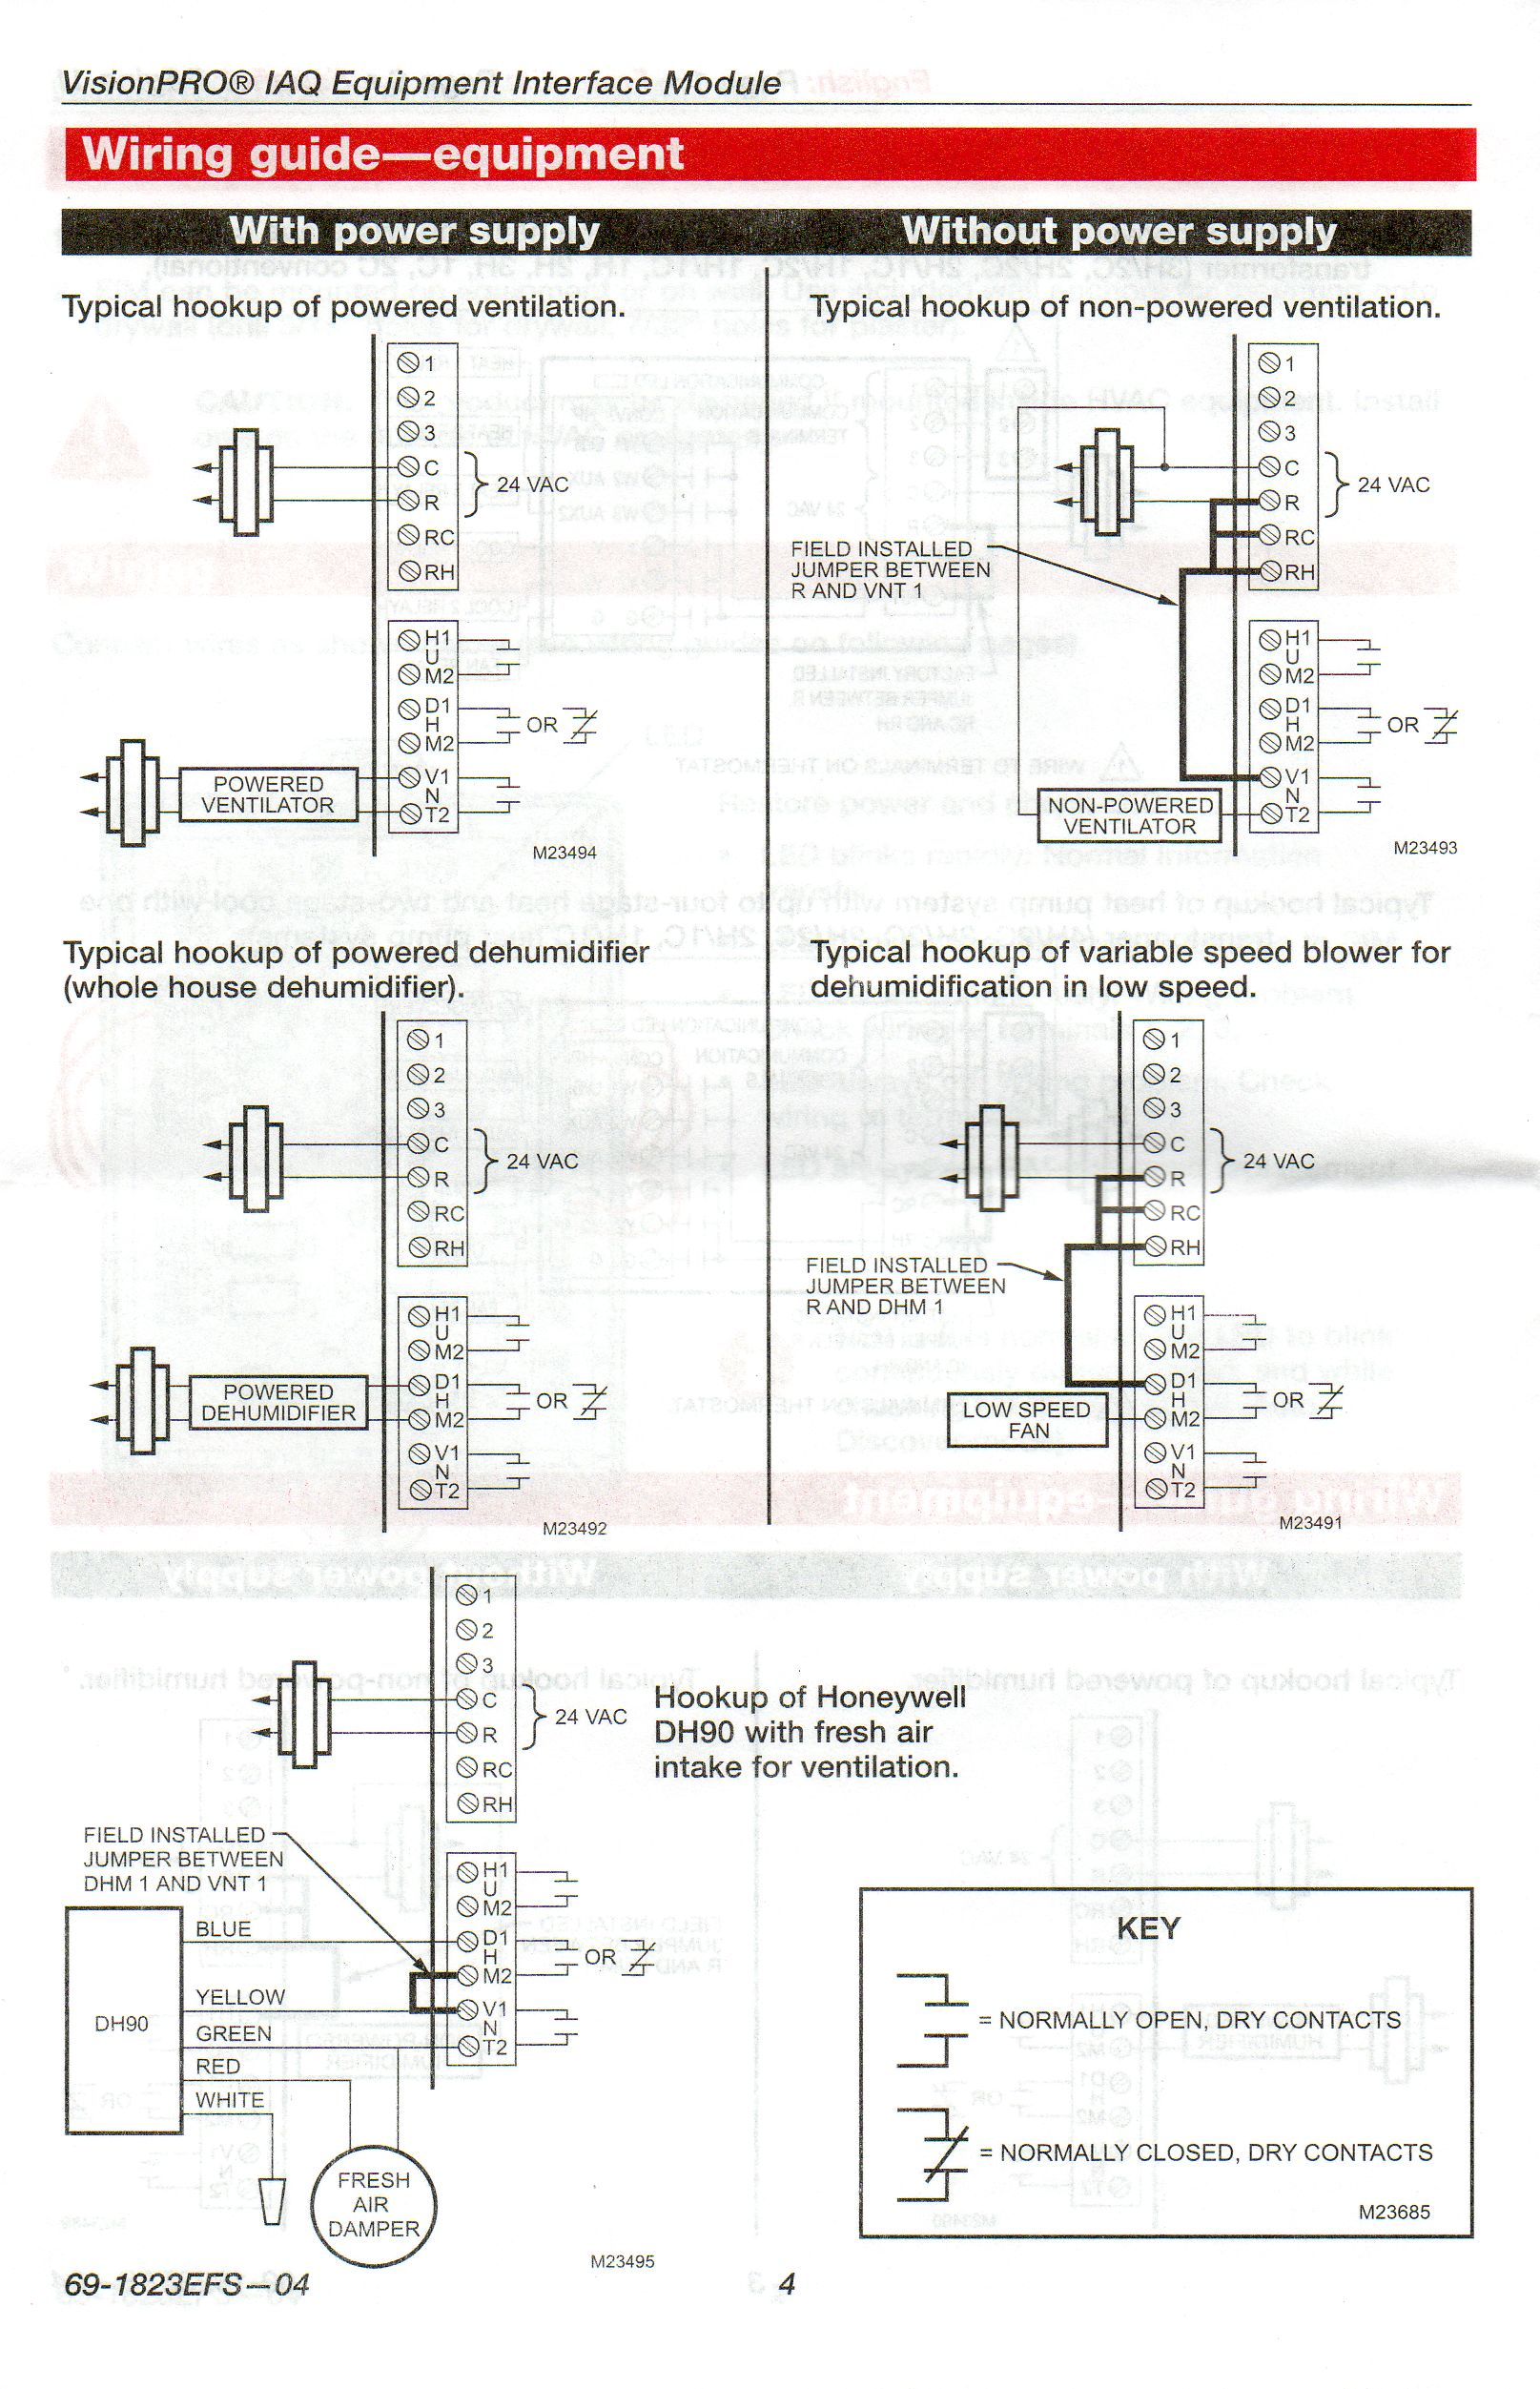 Fine honeywell damper module wiring diagram ideas electrical and wiring diagram motorized damper asfbconference2016 Choice Image